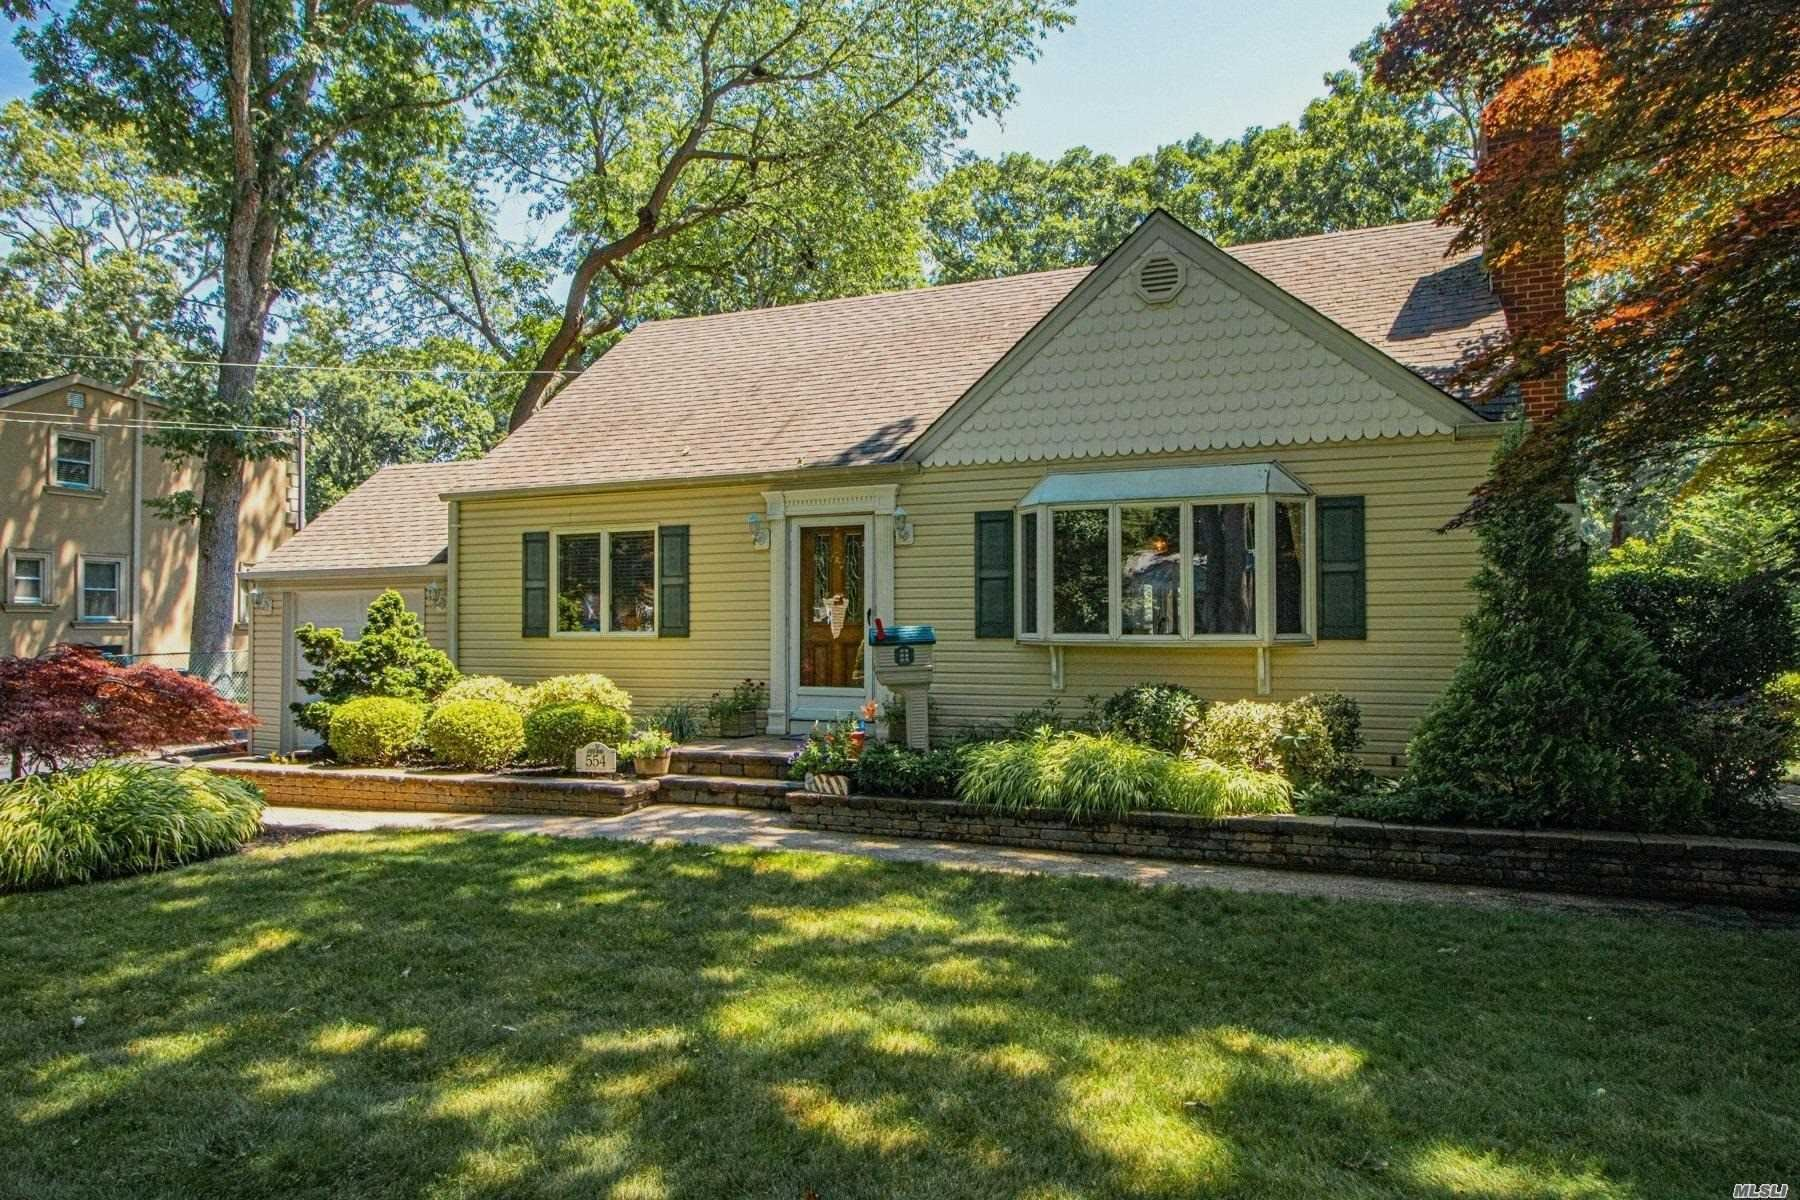 554 Potter Blvd, Brightwaters, NY 11718 - MLS#: 3234919